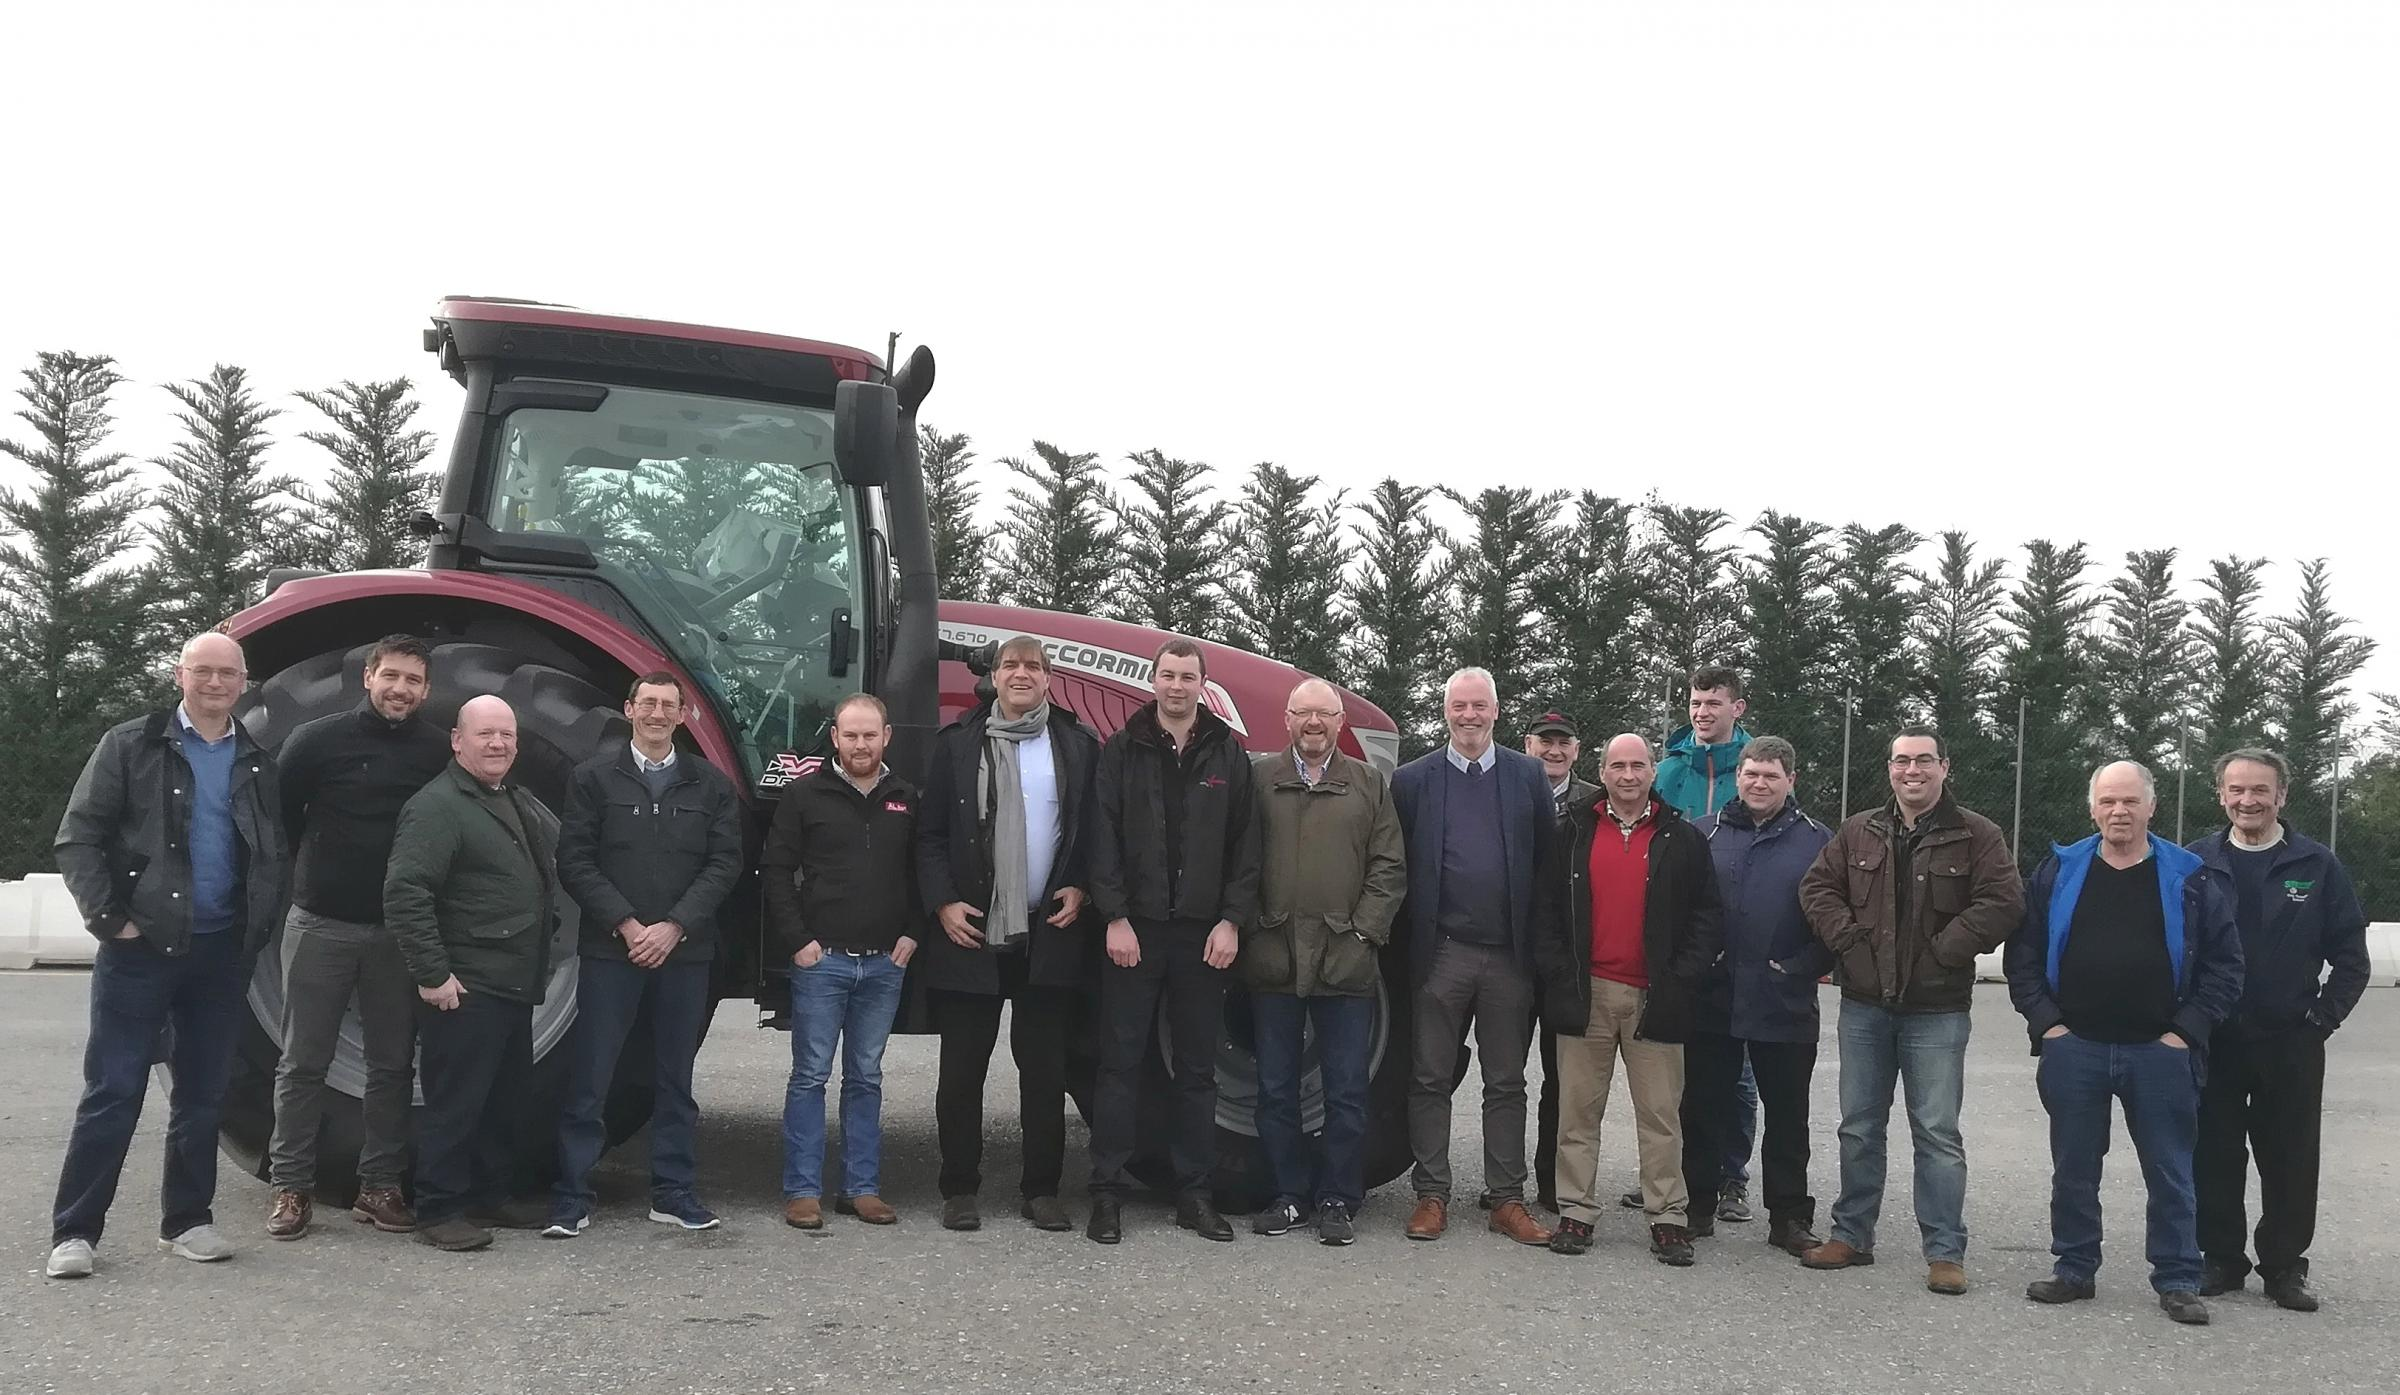 Angus farmers at the McCormick manufacturing and assembly plant with Simeone Morra, commercial director (centre) flanked by Liam Wylie (left) and Andy Mitchell. Bob Bain, Argo Tractors area sales manager for Scotland and Northern Ireland, is pictured eigh